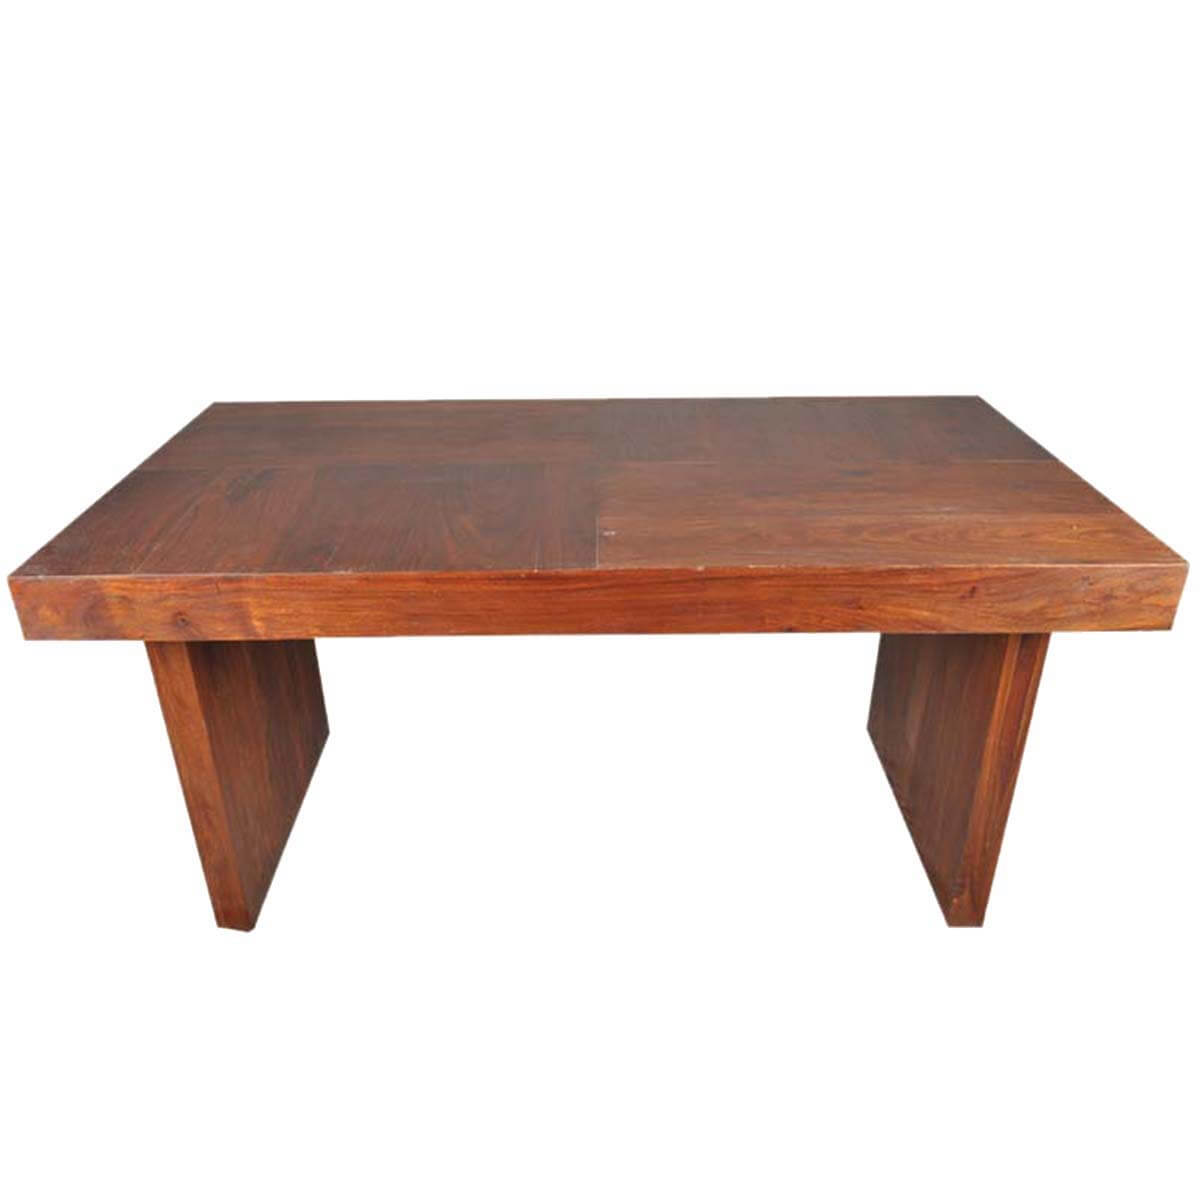 Wooden Bench For Dining Table: Sierra Contemporary Mango Wood Bench Dining Table